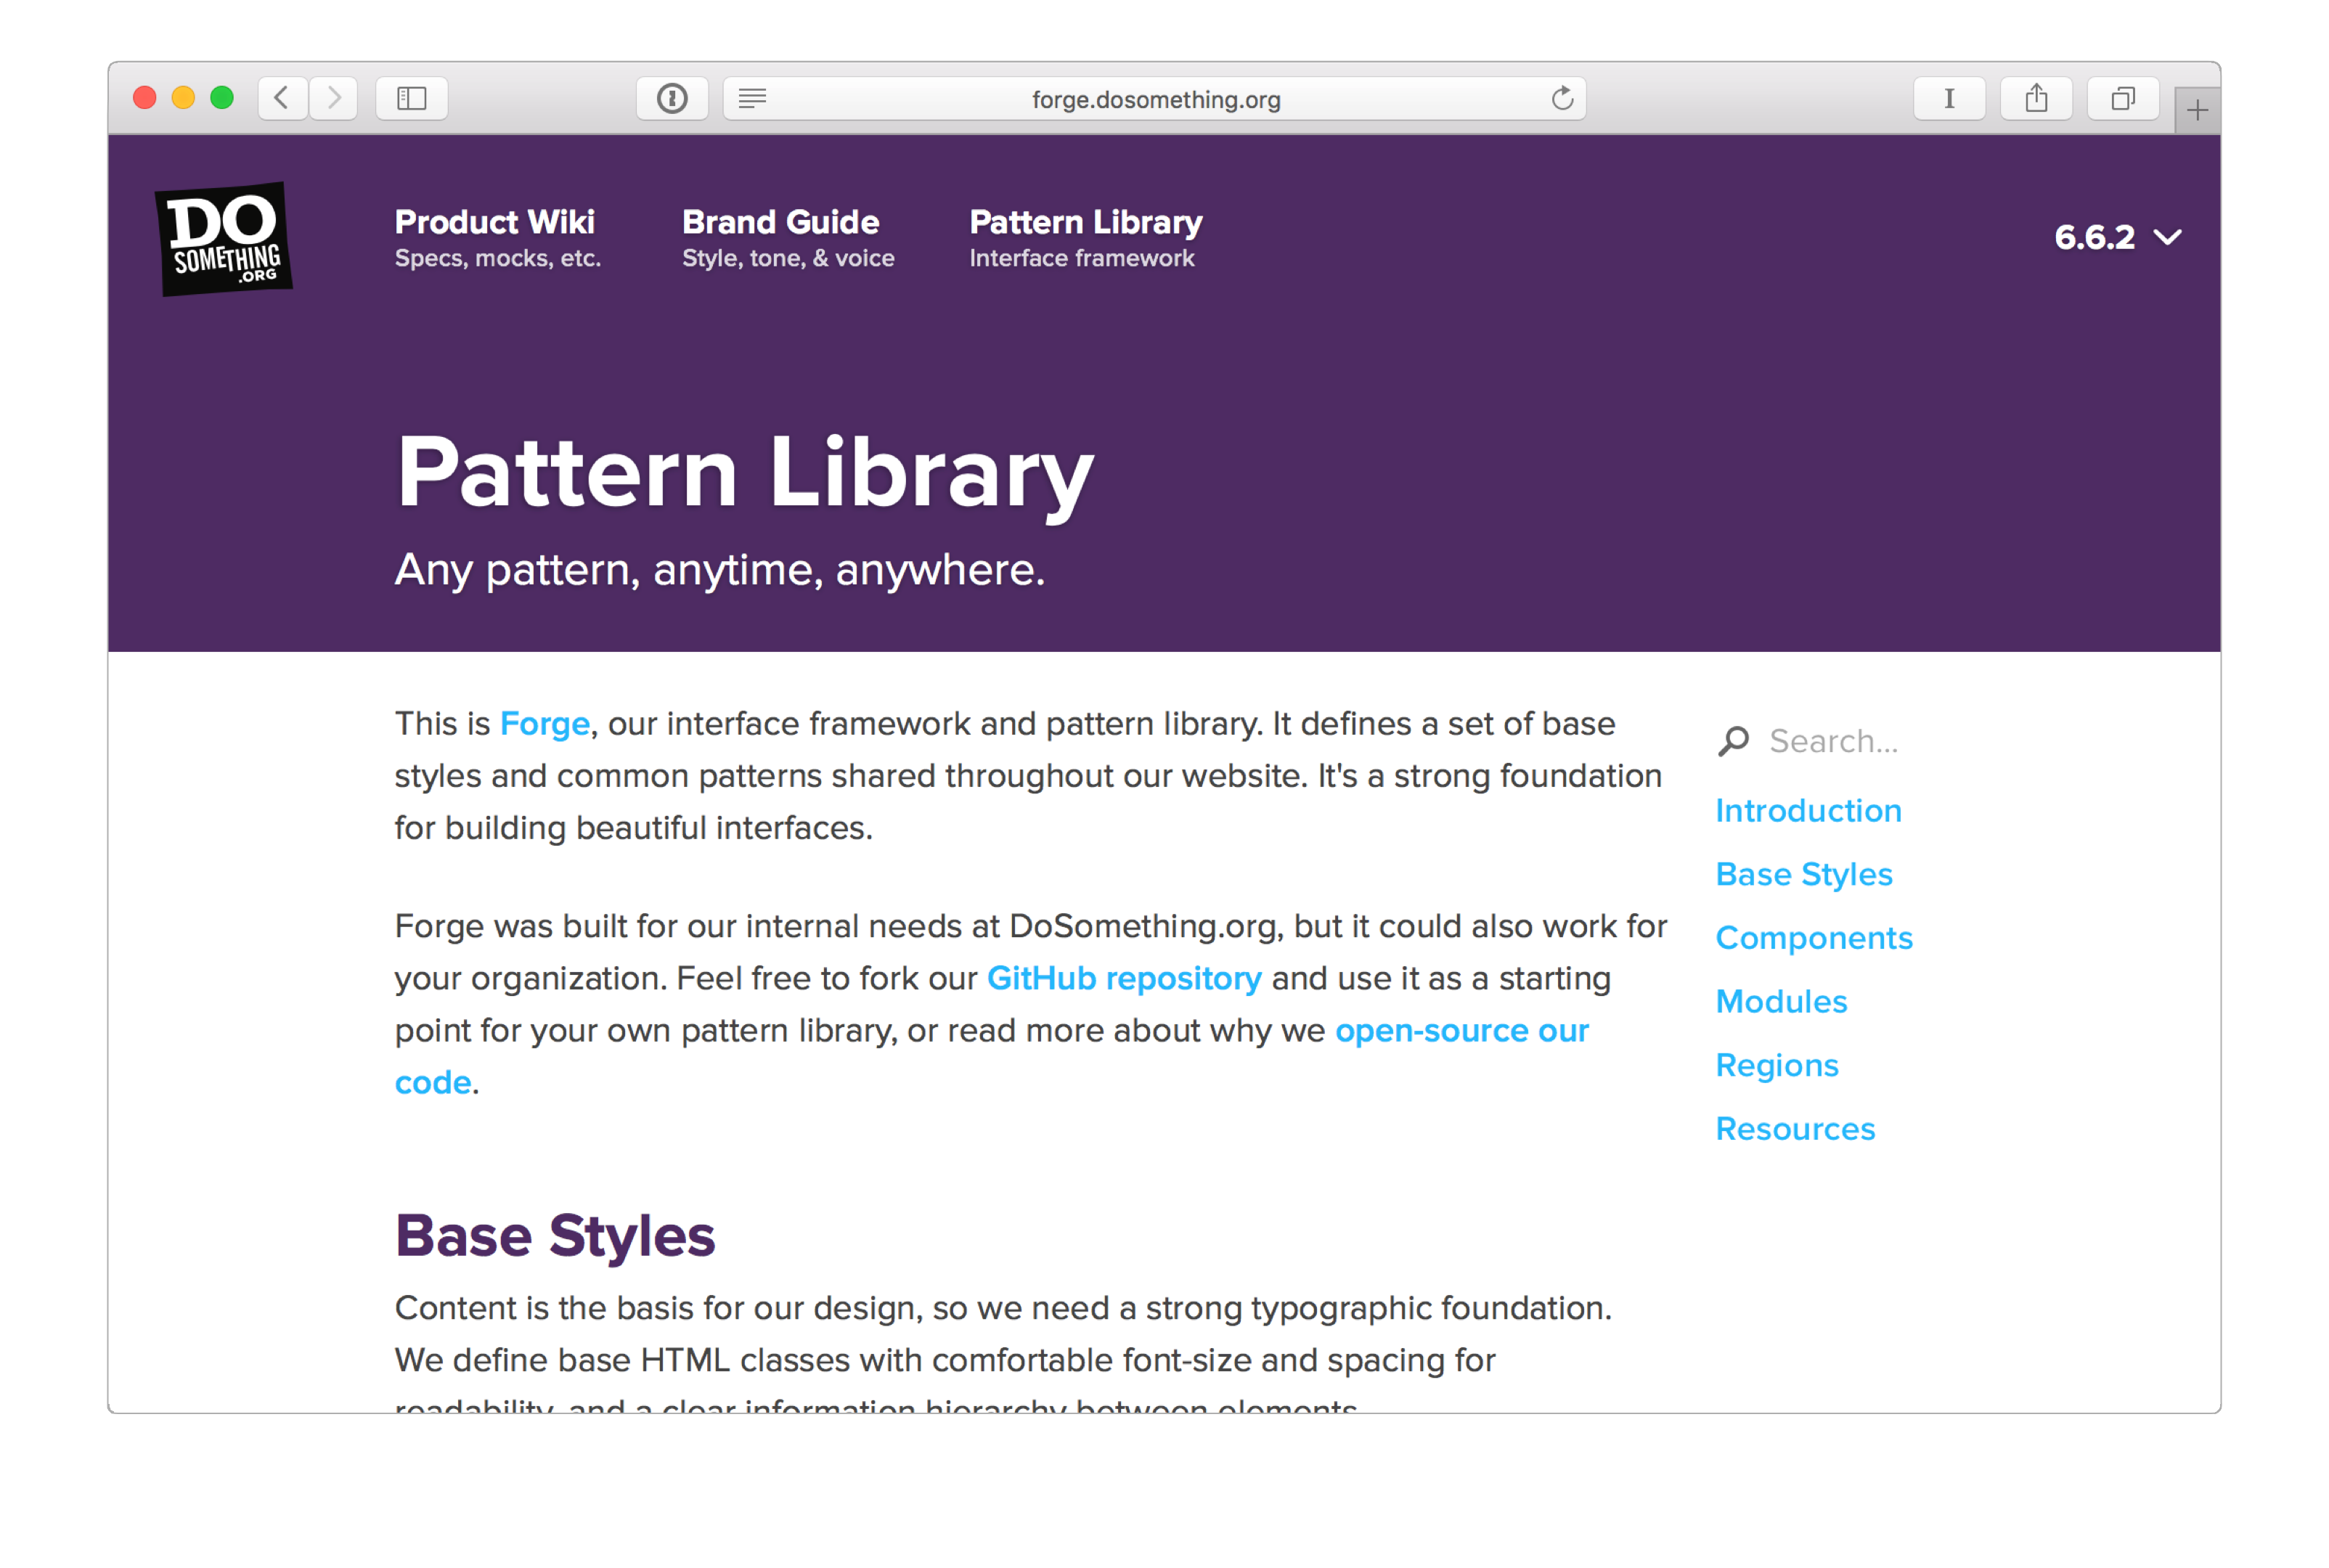 A screenshot of Forge, the DoSomething.org pattern library.